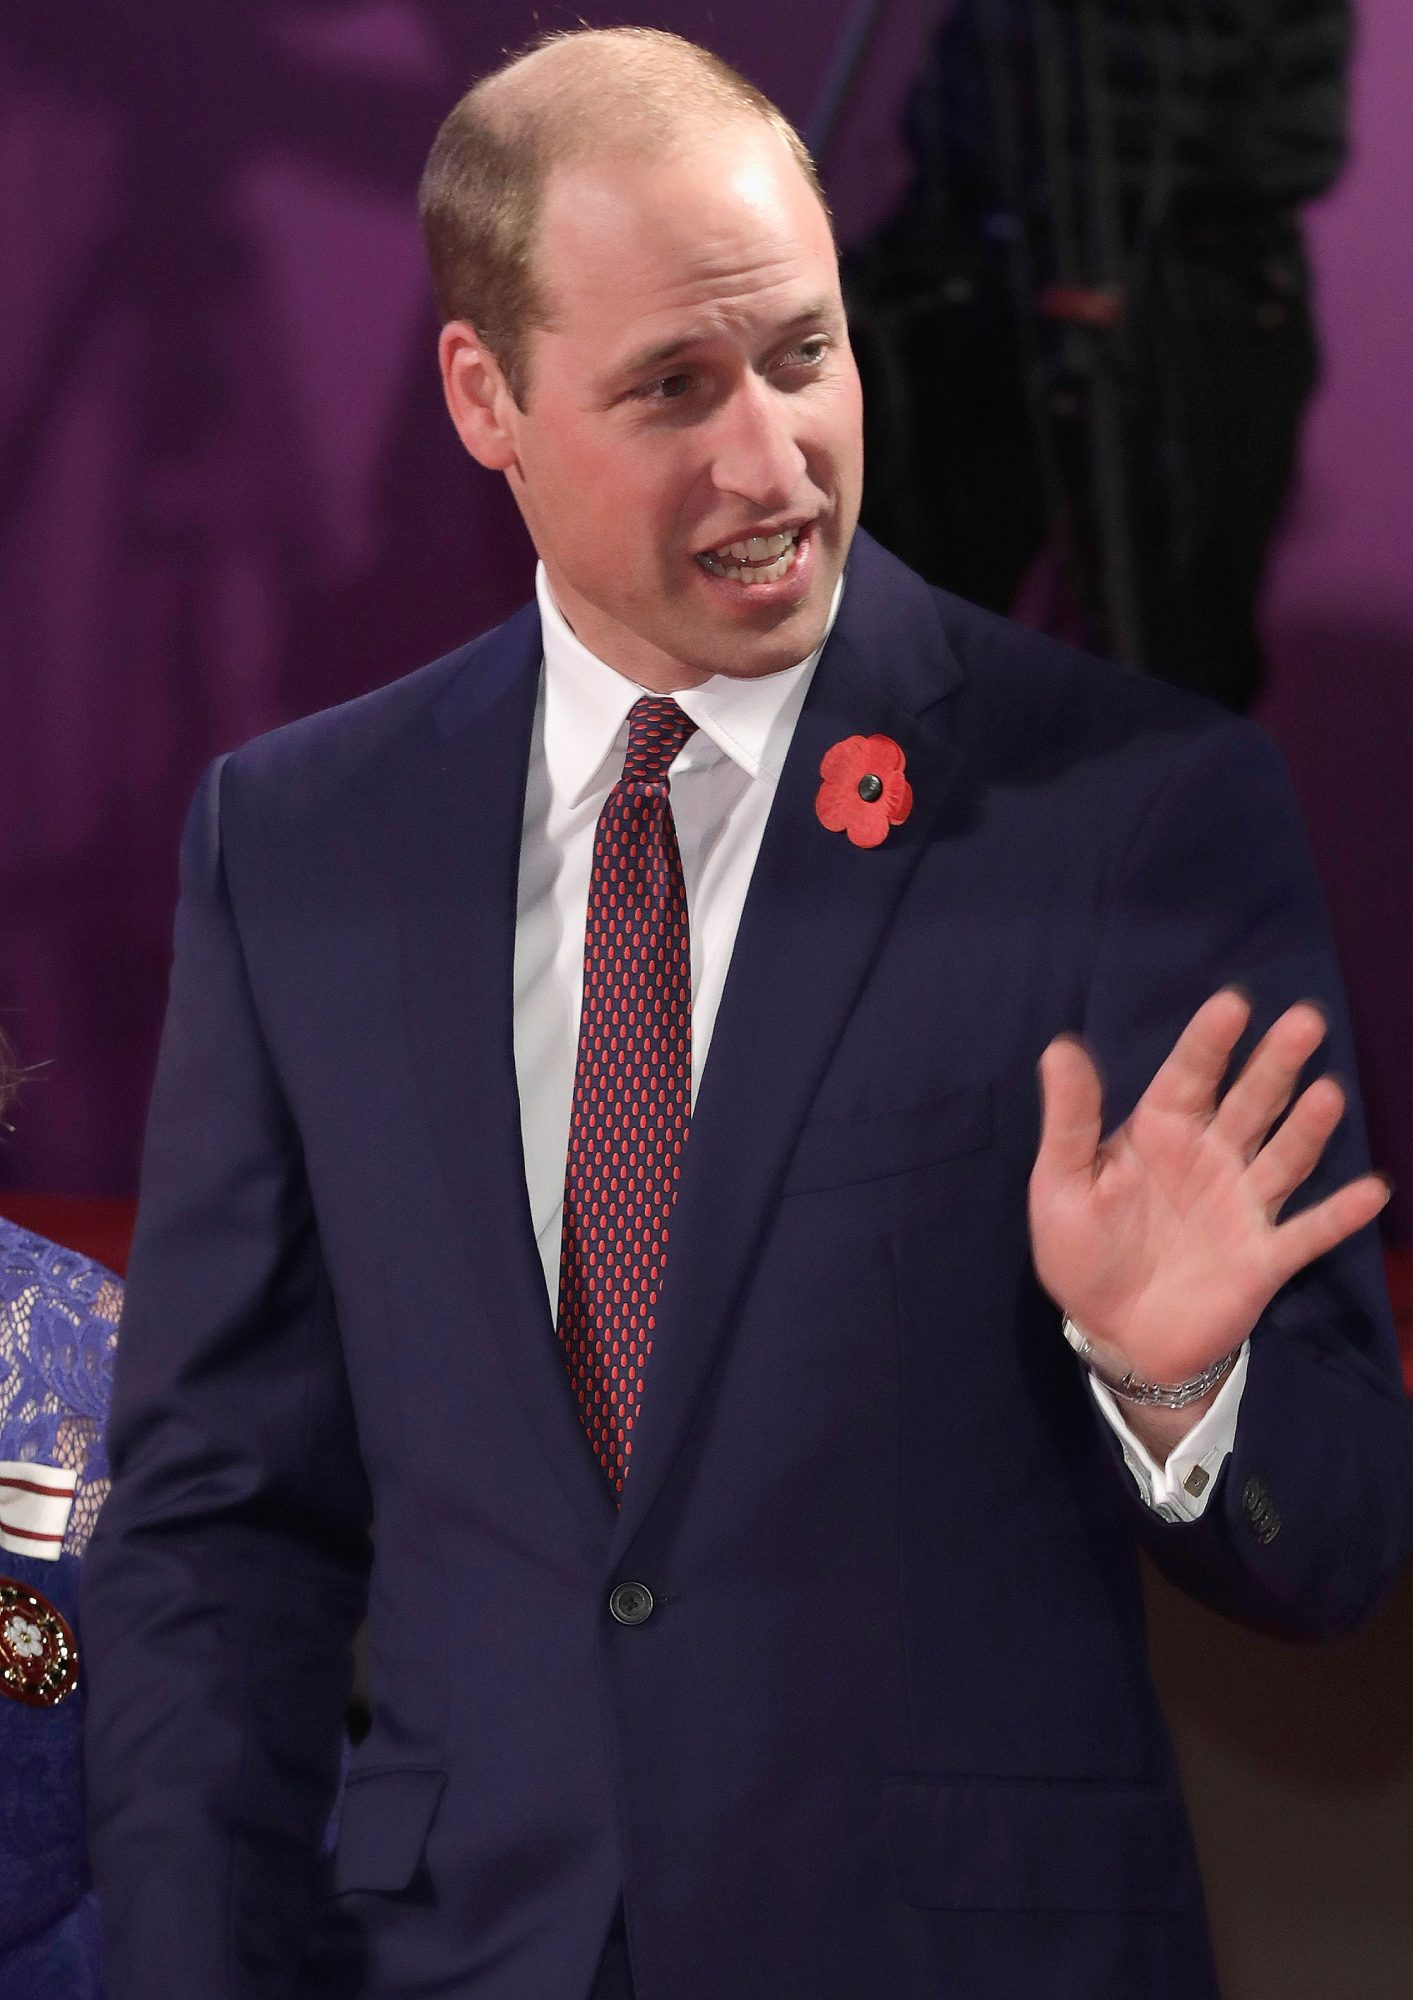 prince-william-2